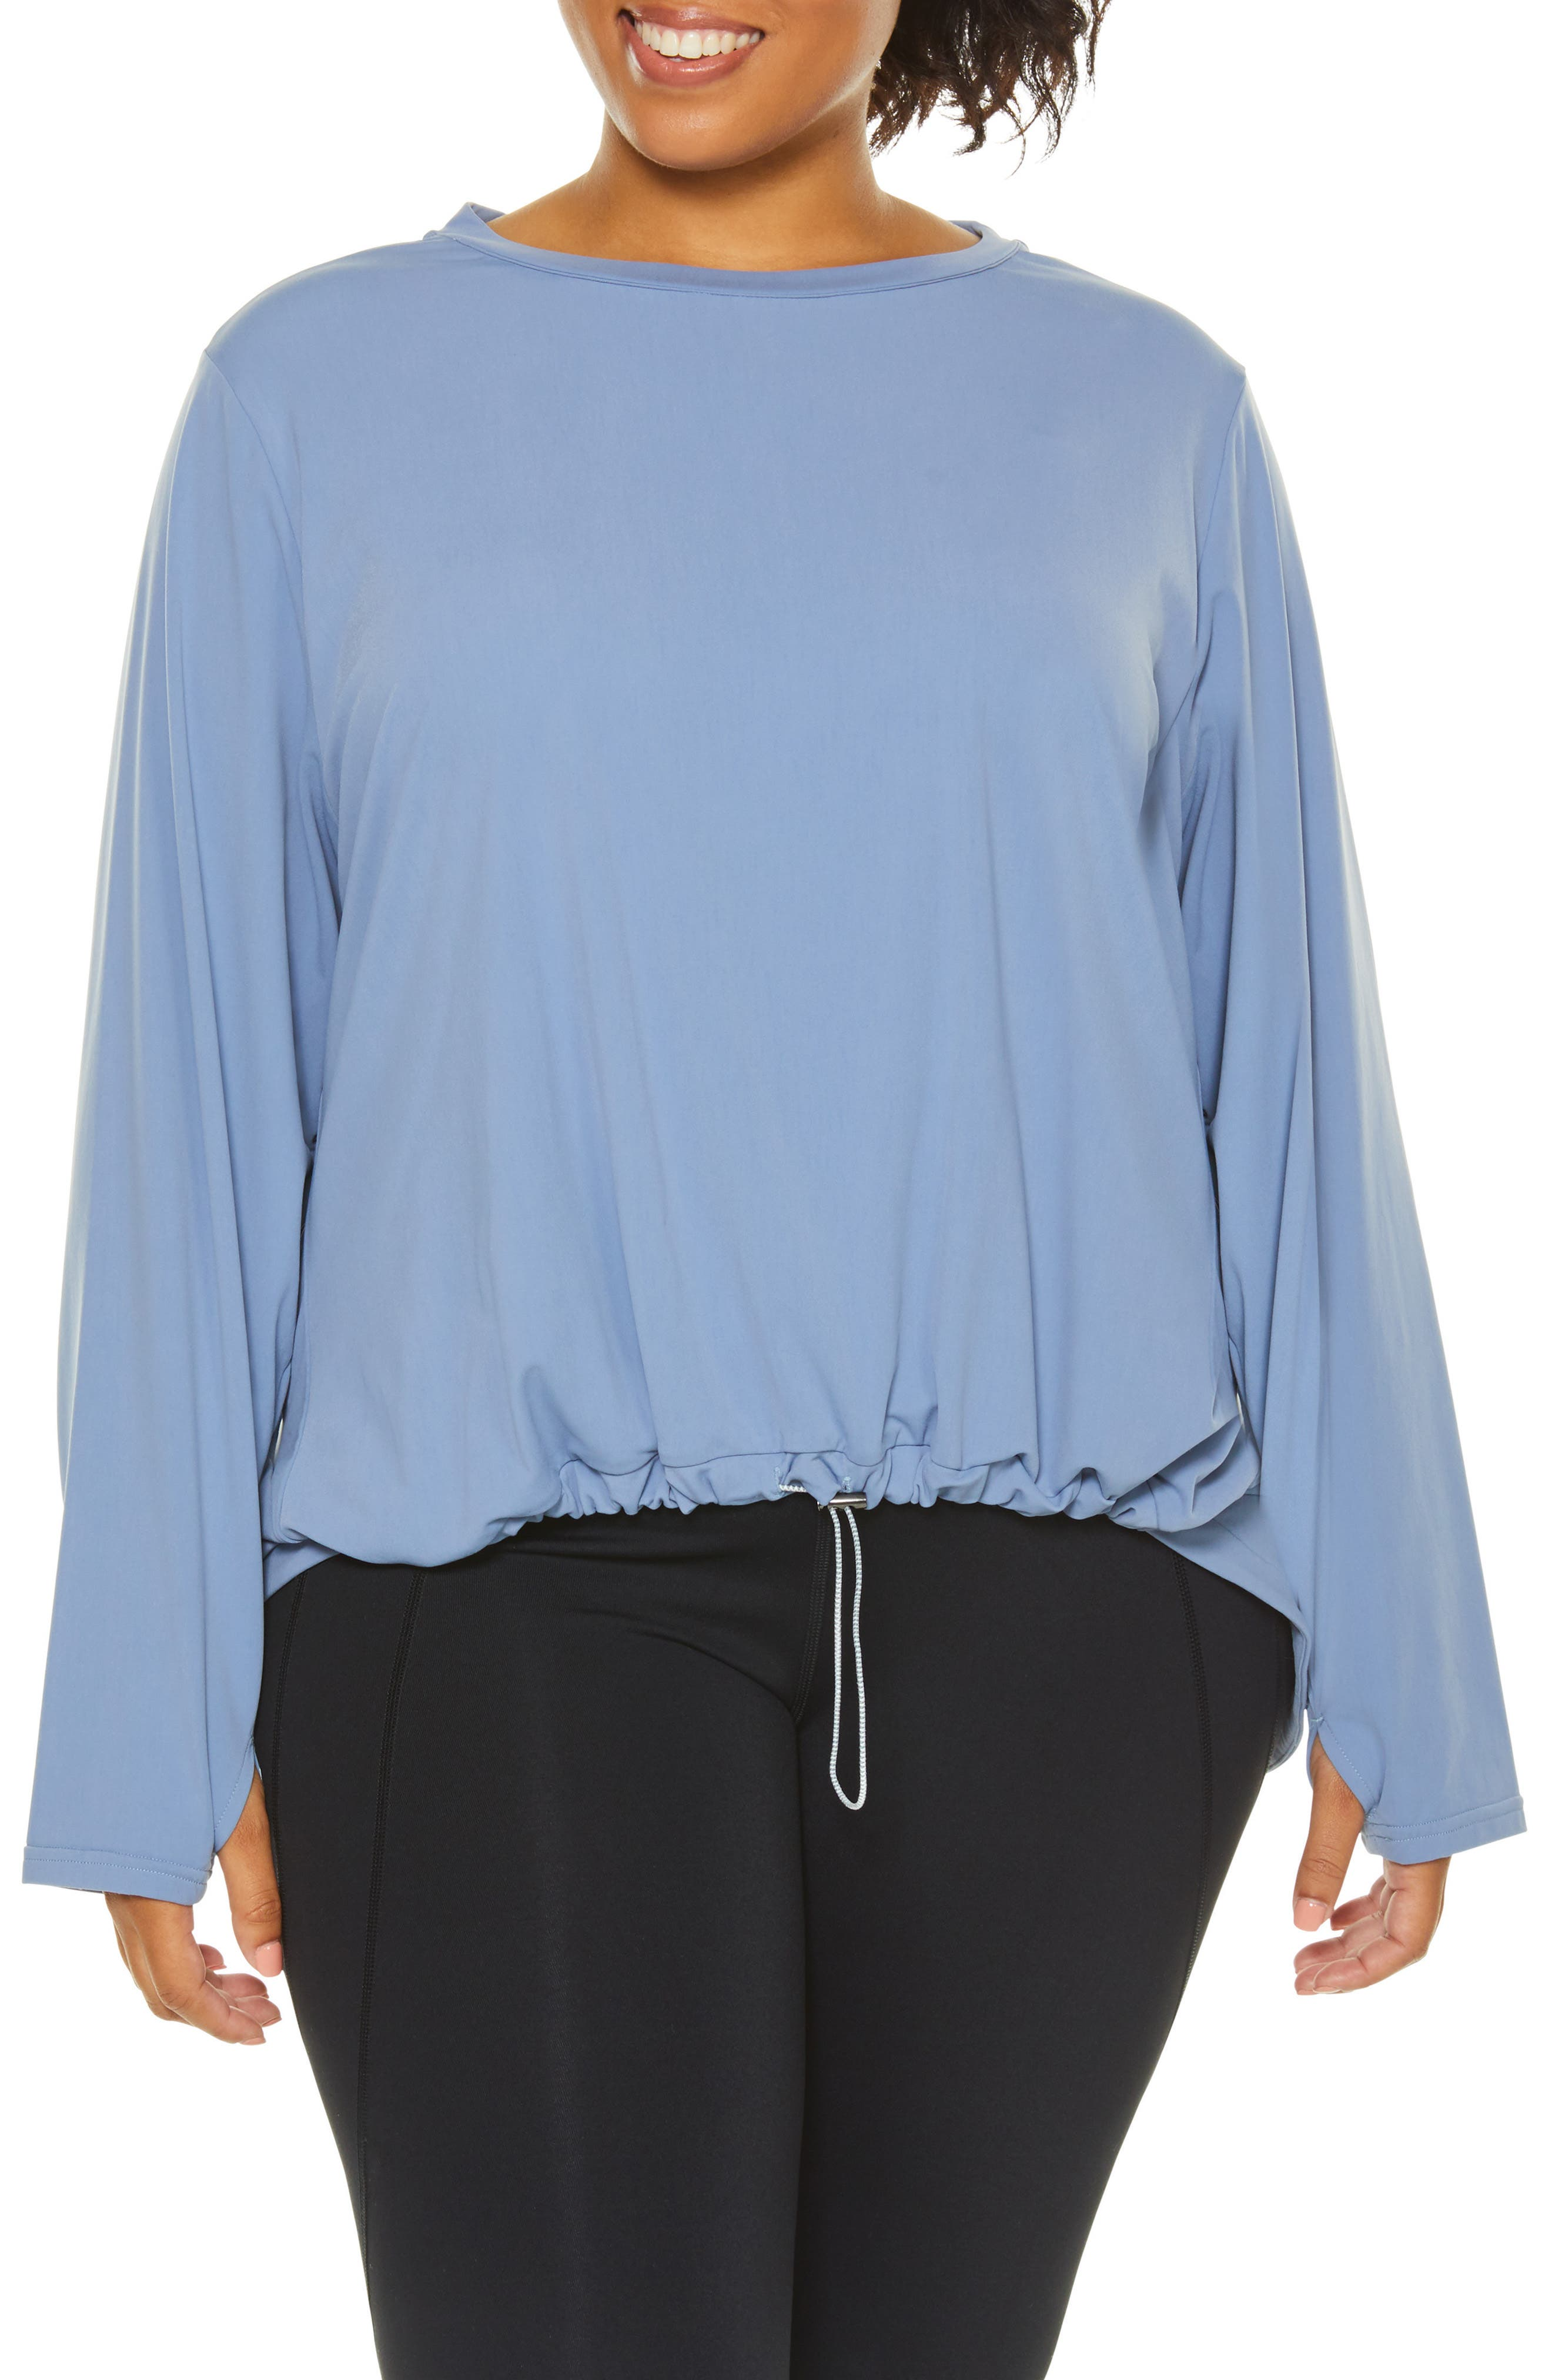 SHAPE ACTIVEWEAR Opt Out High/Low Sweatshirt, Main, color, INFINITY